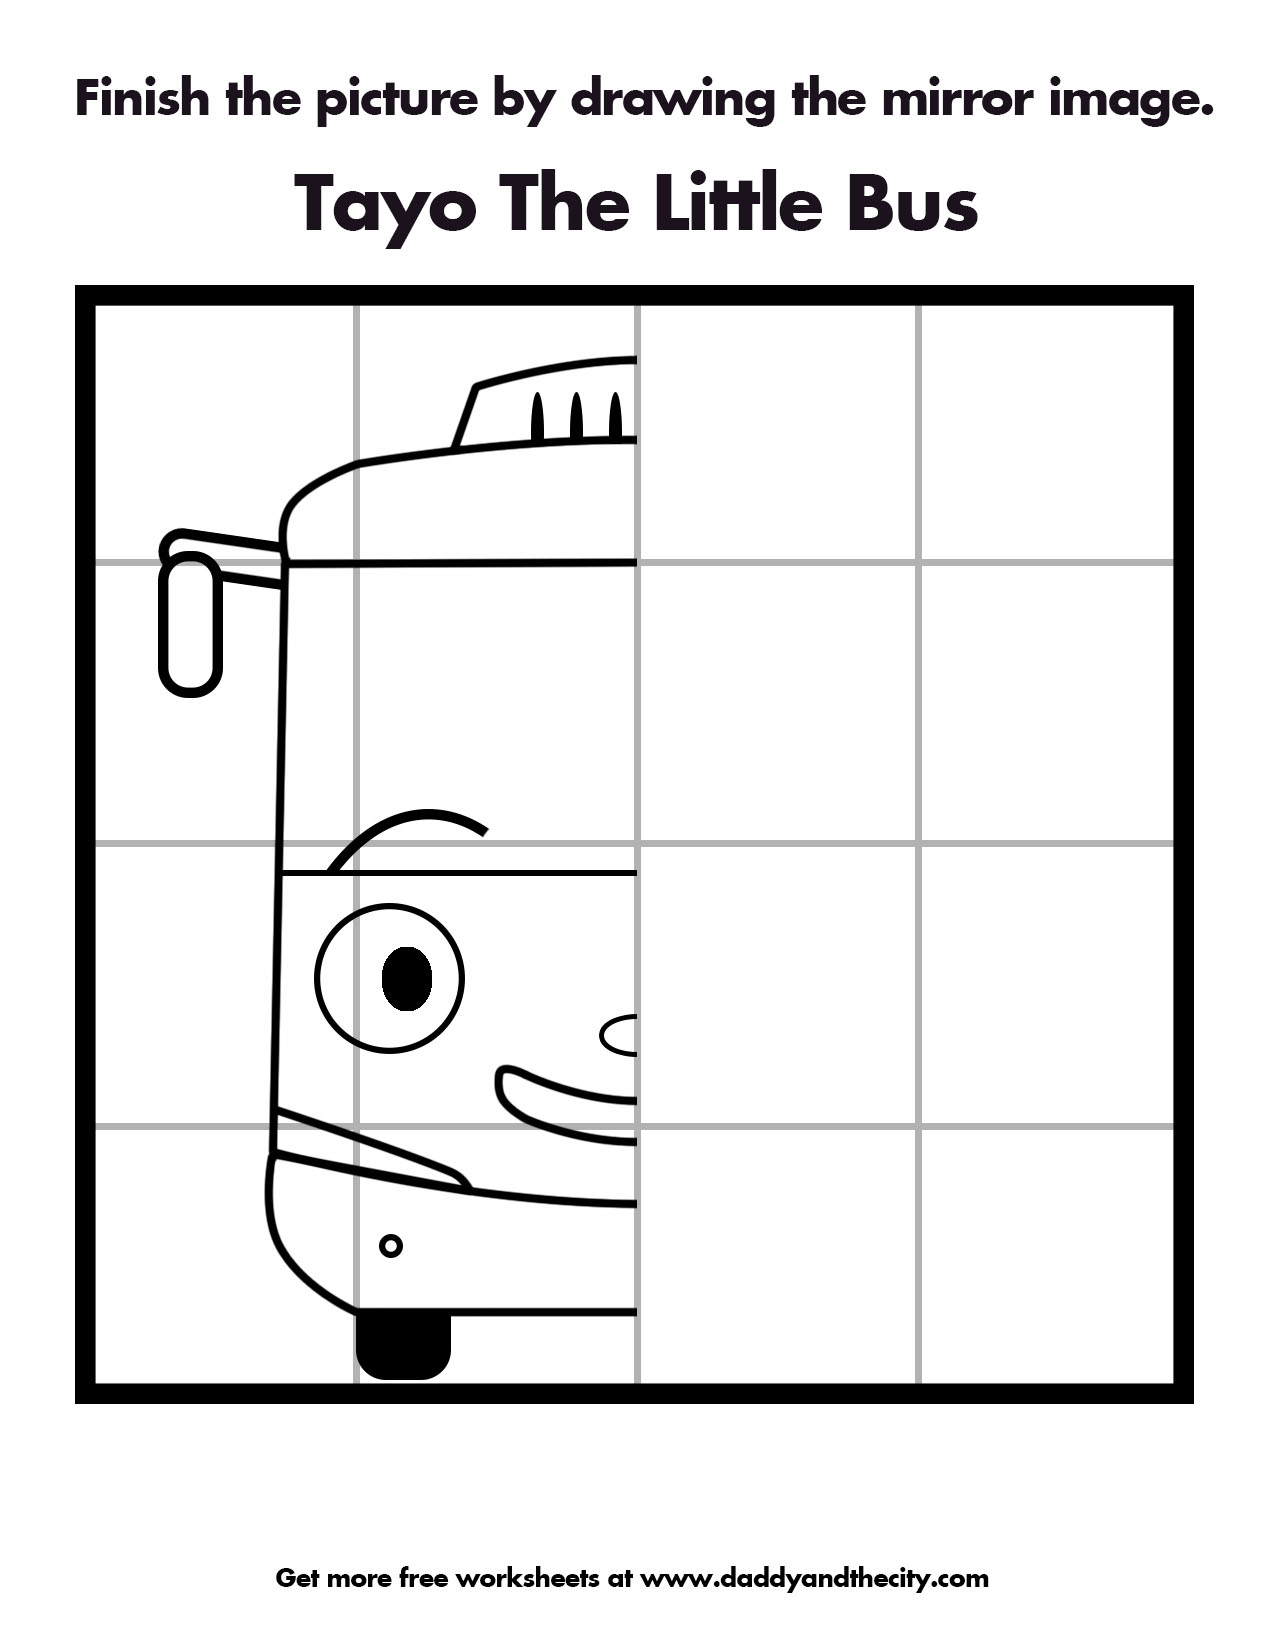 Tayo The Little Bus Mirror Image Worksheet Daddy And